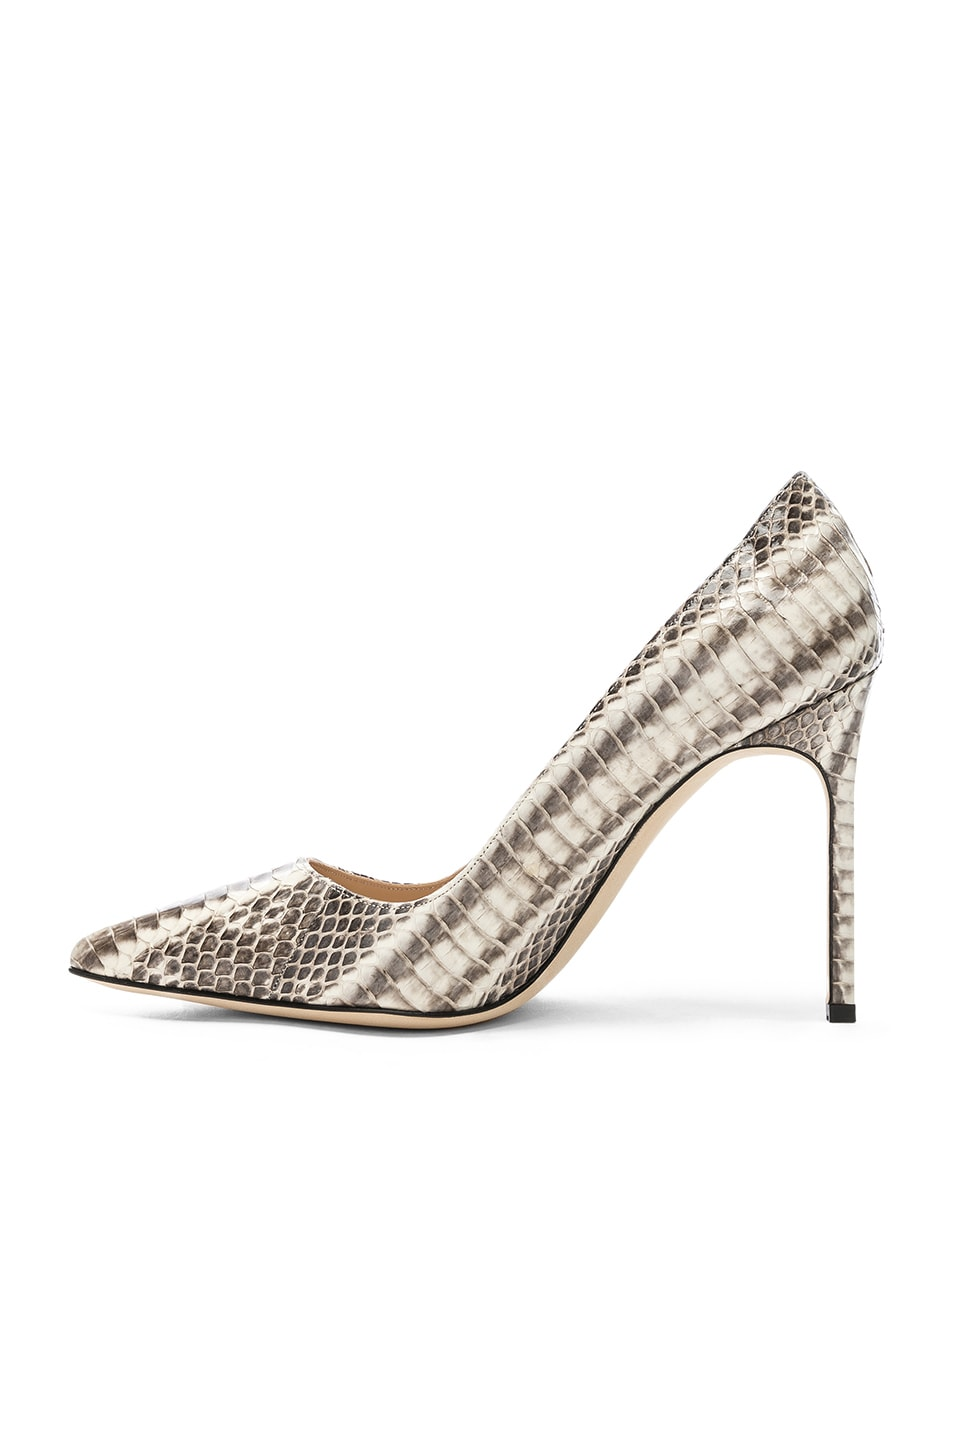 Image 5 of Manolo Blahnik BB Watersnake 105 Heel in Black & White